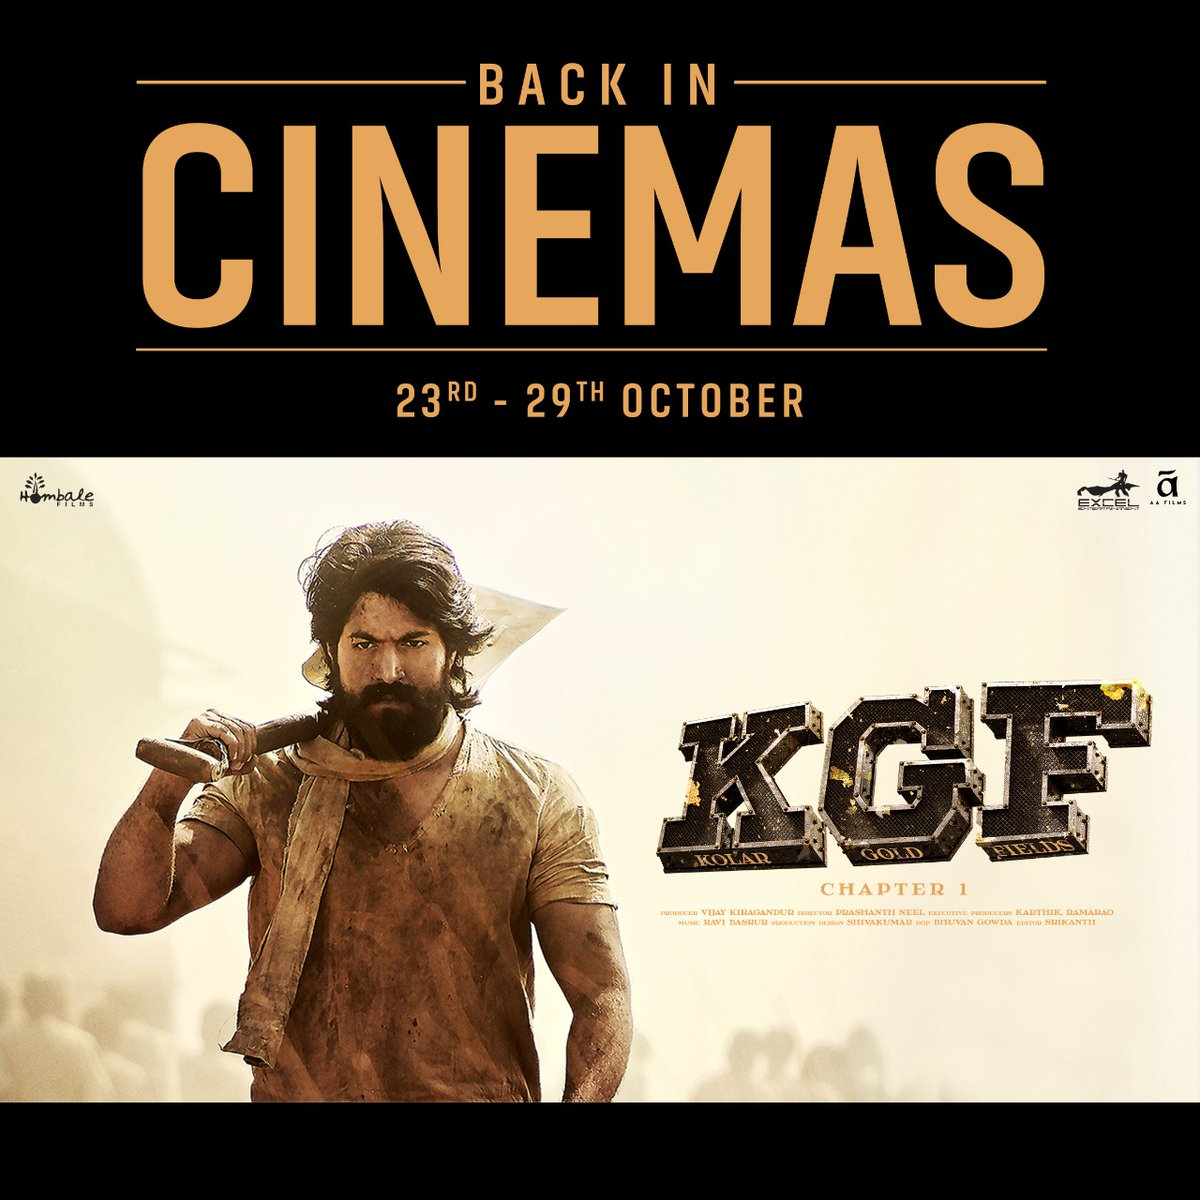 Enjoy at the movies, responsibly! Catch the re-release of #KGFChapter1 at a Cinema near you from 23rd-29th October.  @_PVRCinemas @INOXMovies @IndiaCinepolis @TheNameIsYash @SrinidhiShetty7 @prashanth_neel @VKiragandur @hombalefilms @excelmovies @ritesh_sid  #AAFilms